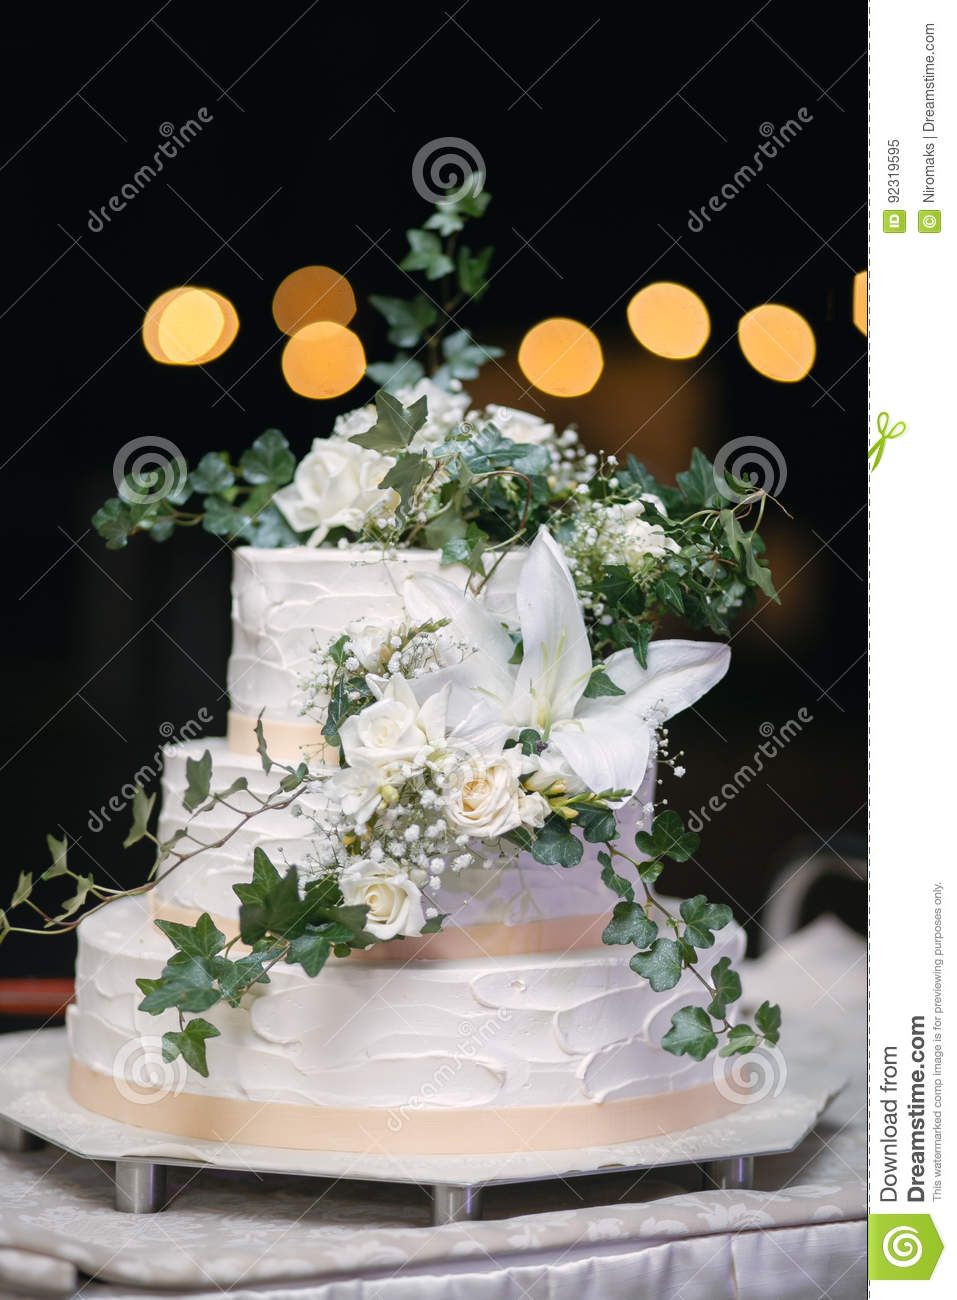 Vertical Shot Of A White Wedding Cake With Fresh Flowers Stock Image